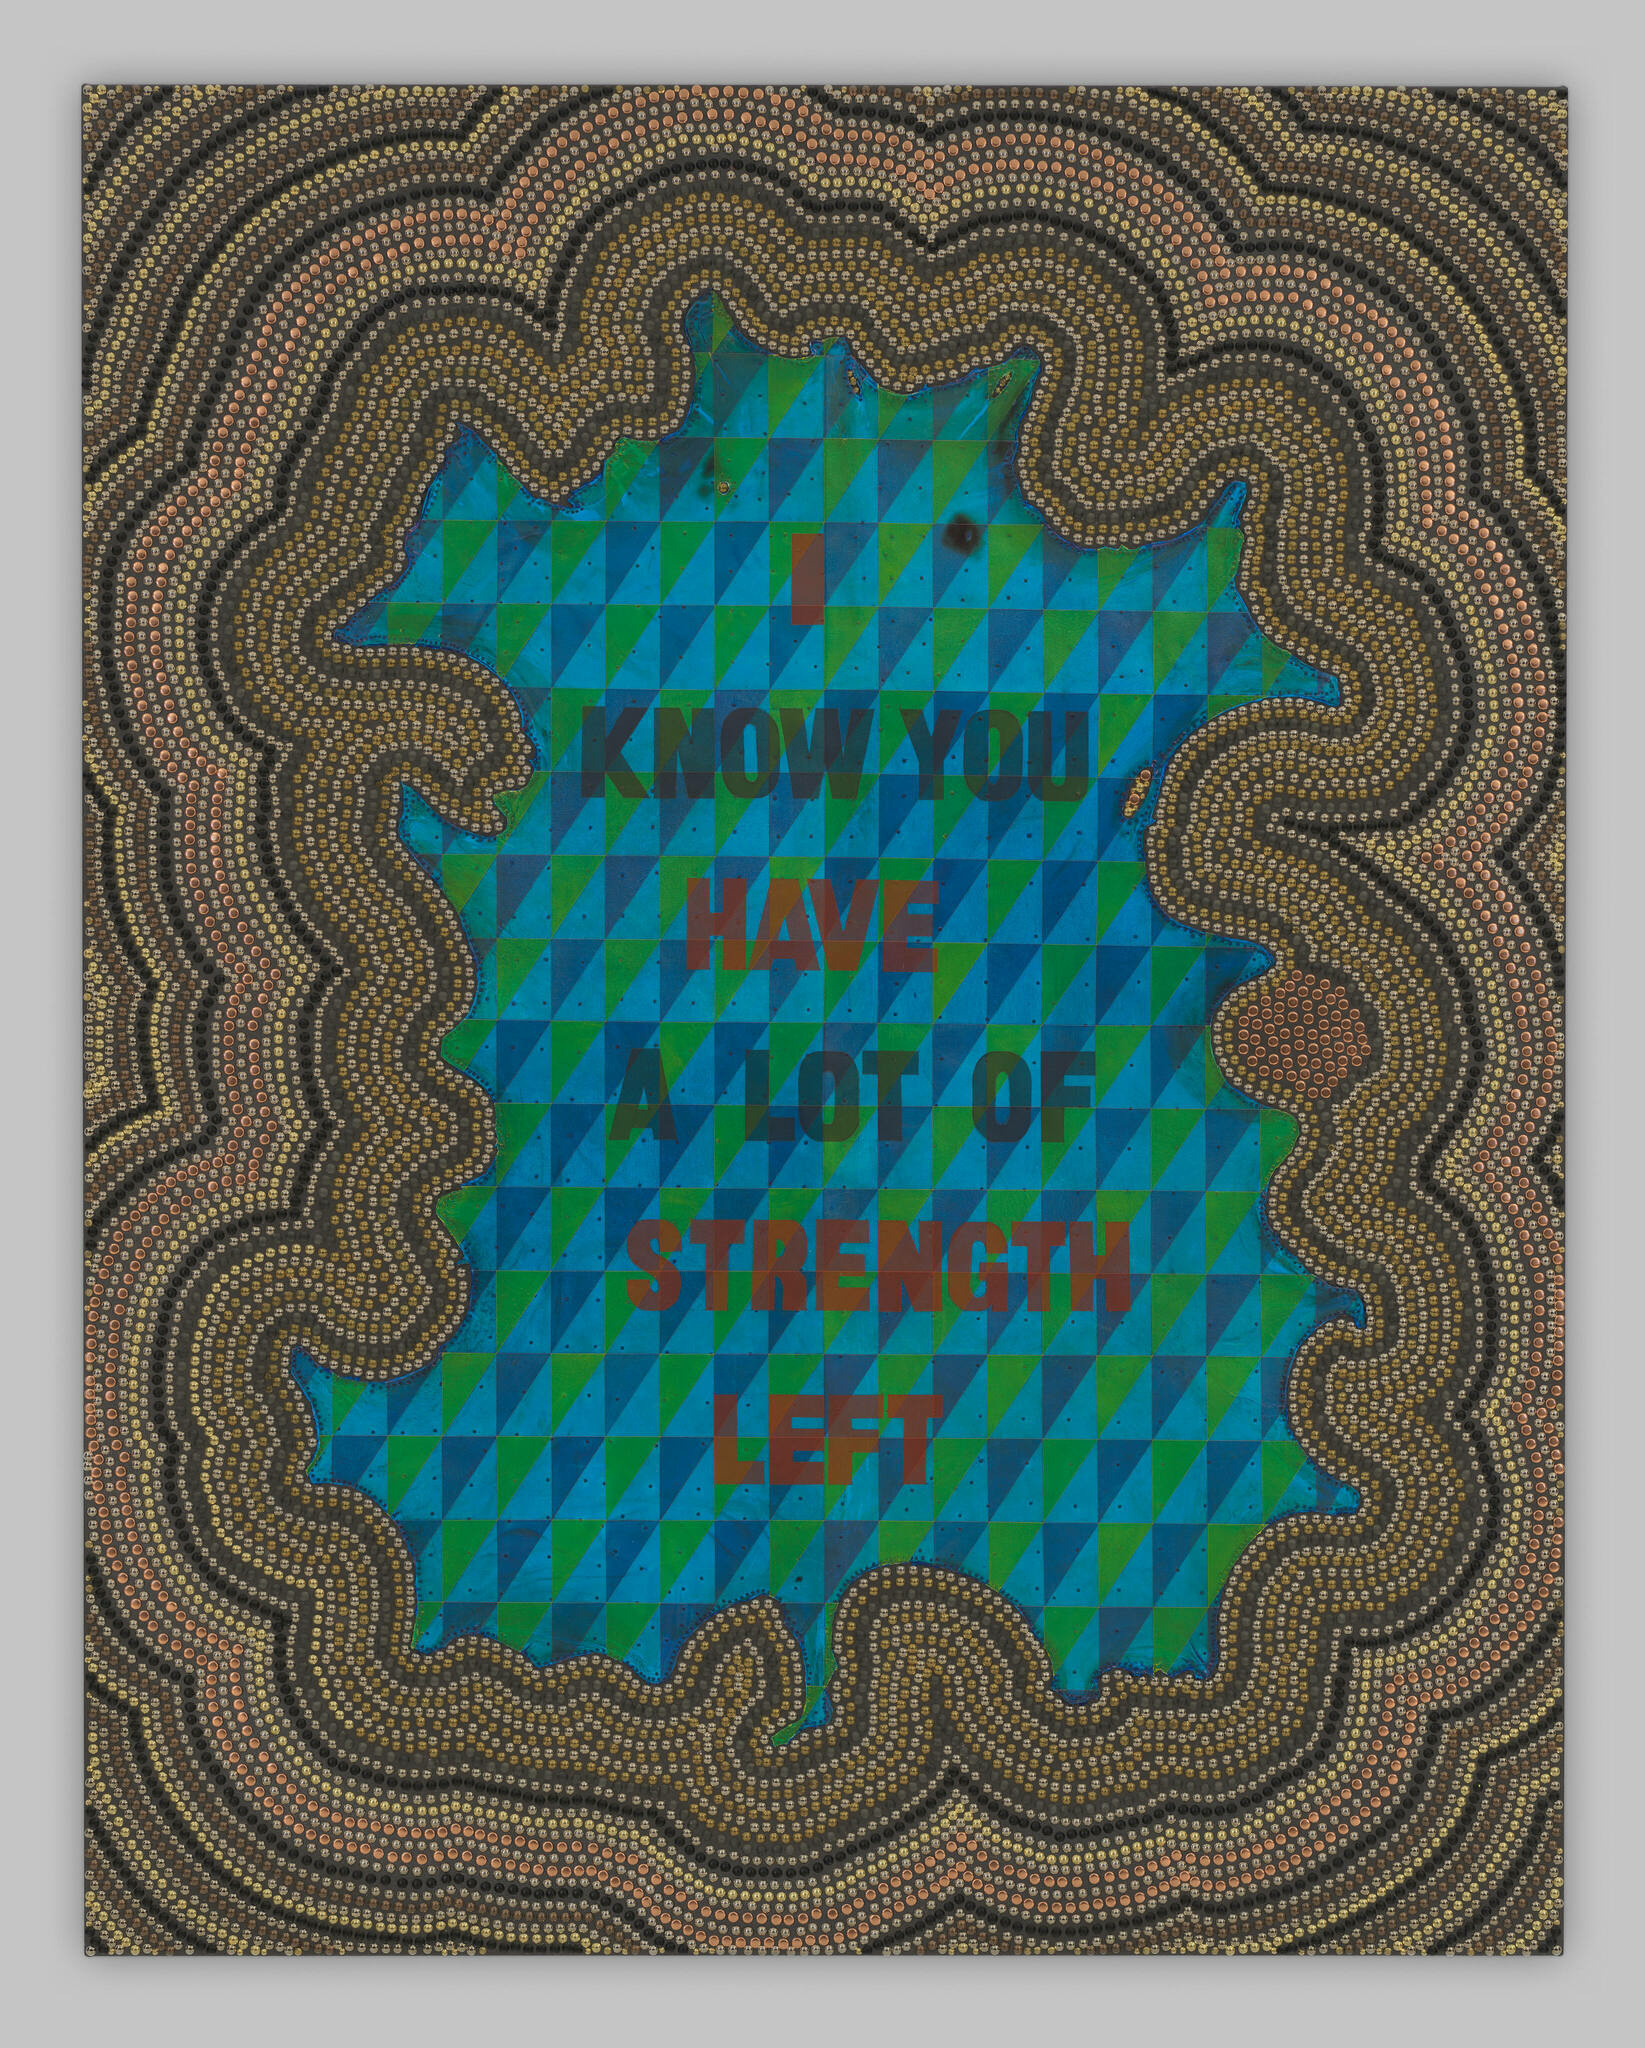 Bold text reads I KNOW YOU HAVE A LOT OF STRENGTH LEFT against a geometric pattern and framed by bead-like metal tacks